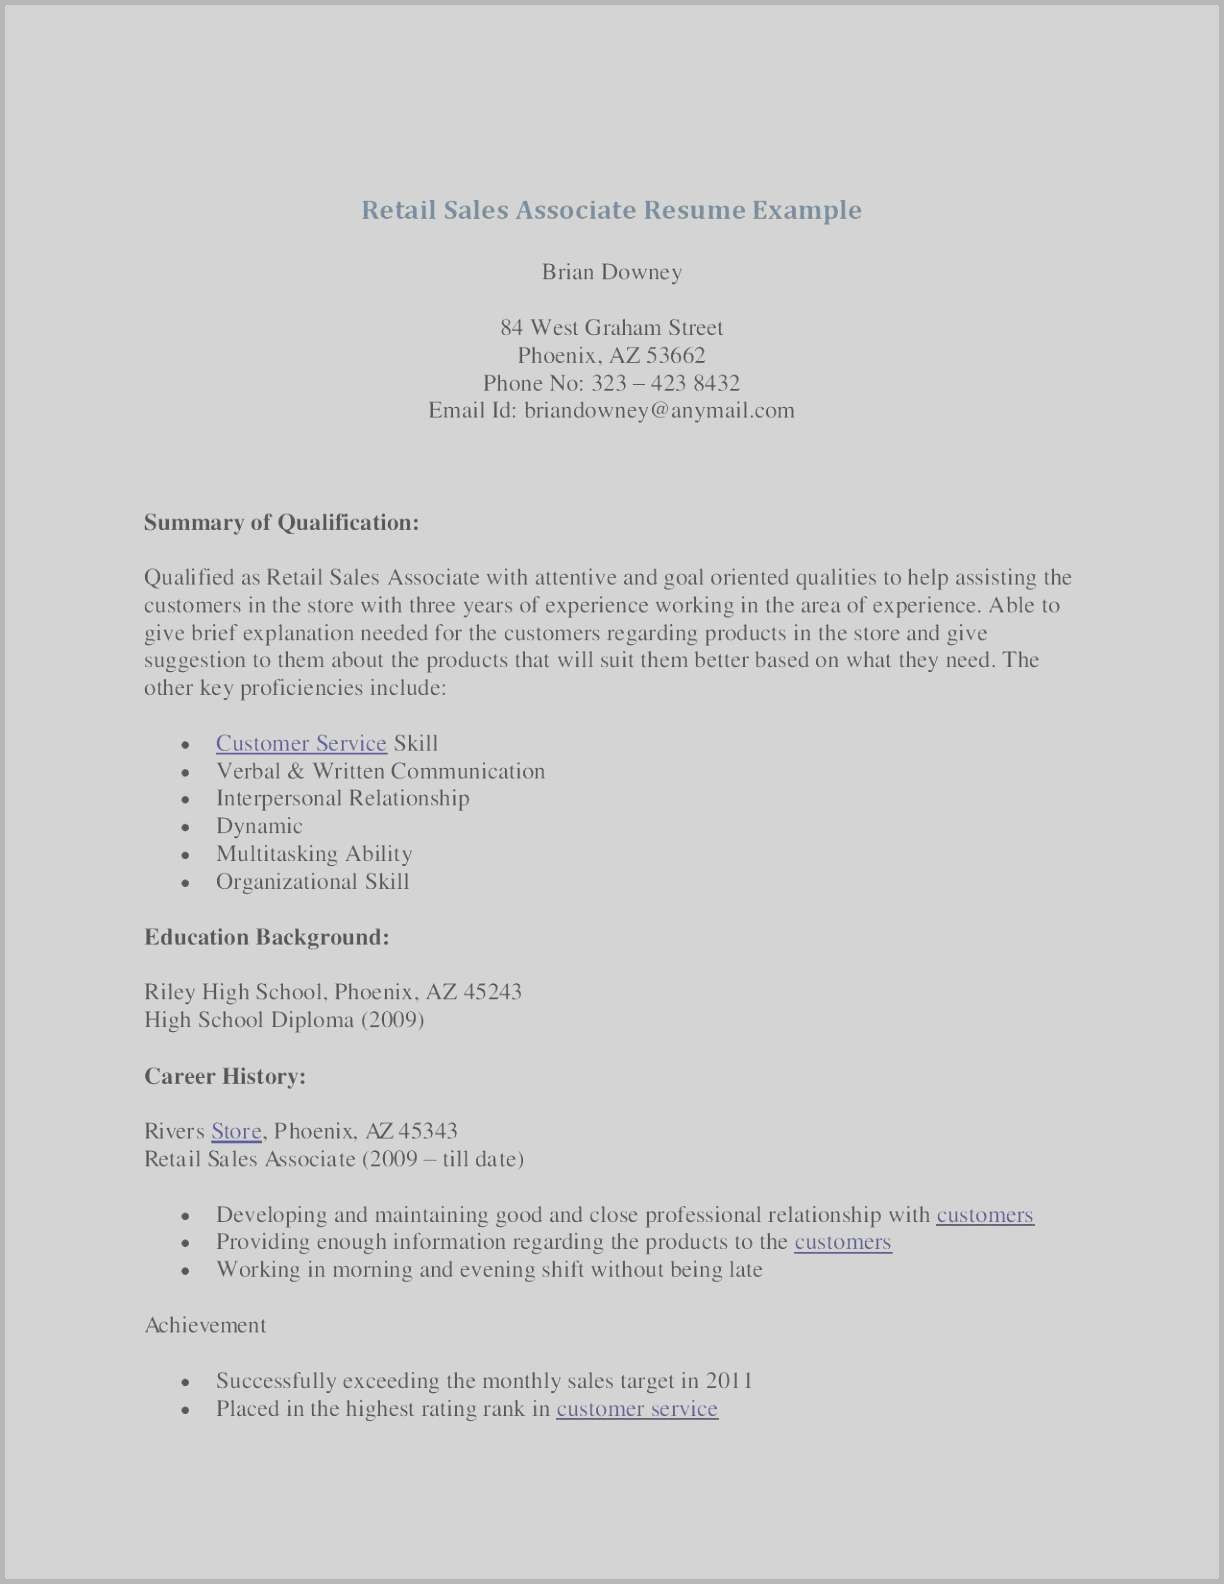 Sale associate Resume - Sales associate Resume Examples Lovely Sample Resume Retail Sales